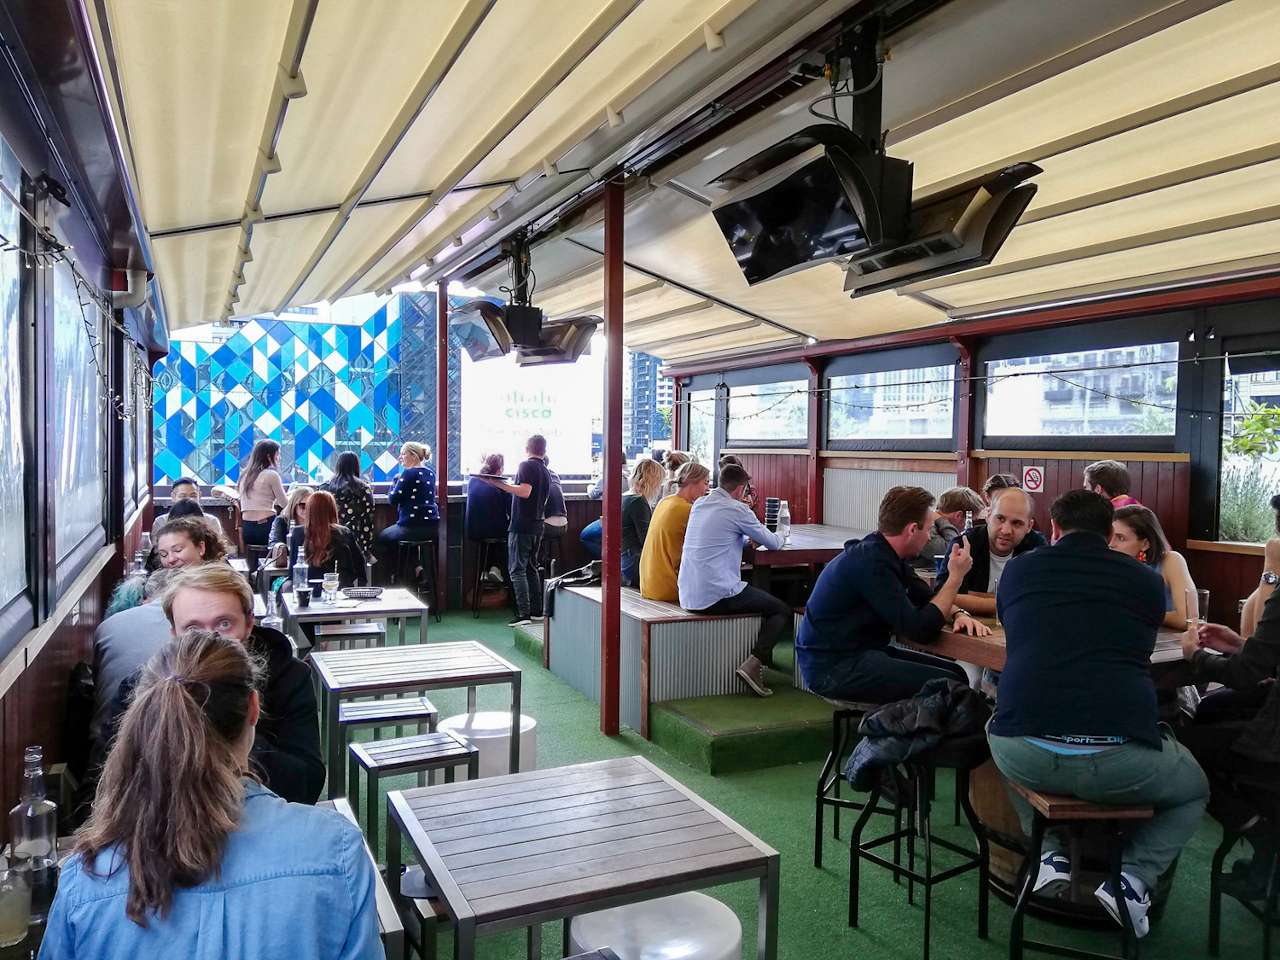 Goldilocks Rooftop Bar is one of the best bars with a view in Melbourne. Here are the top roofbars in Melbourne recommended by a local.